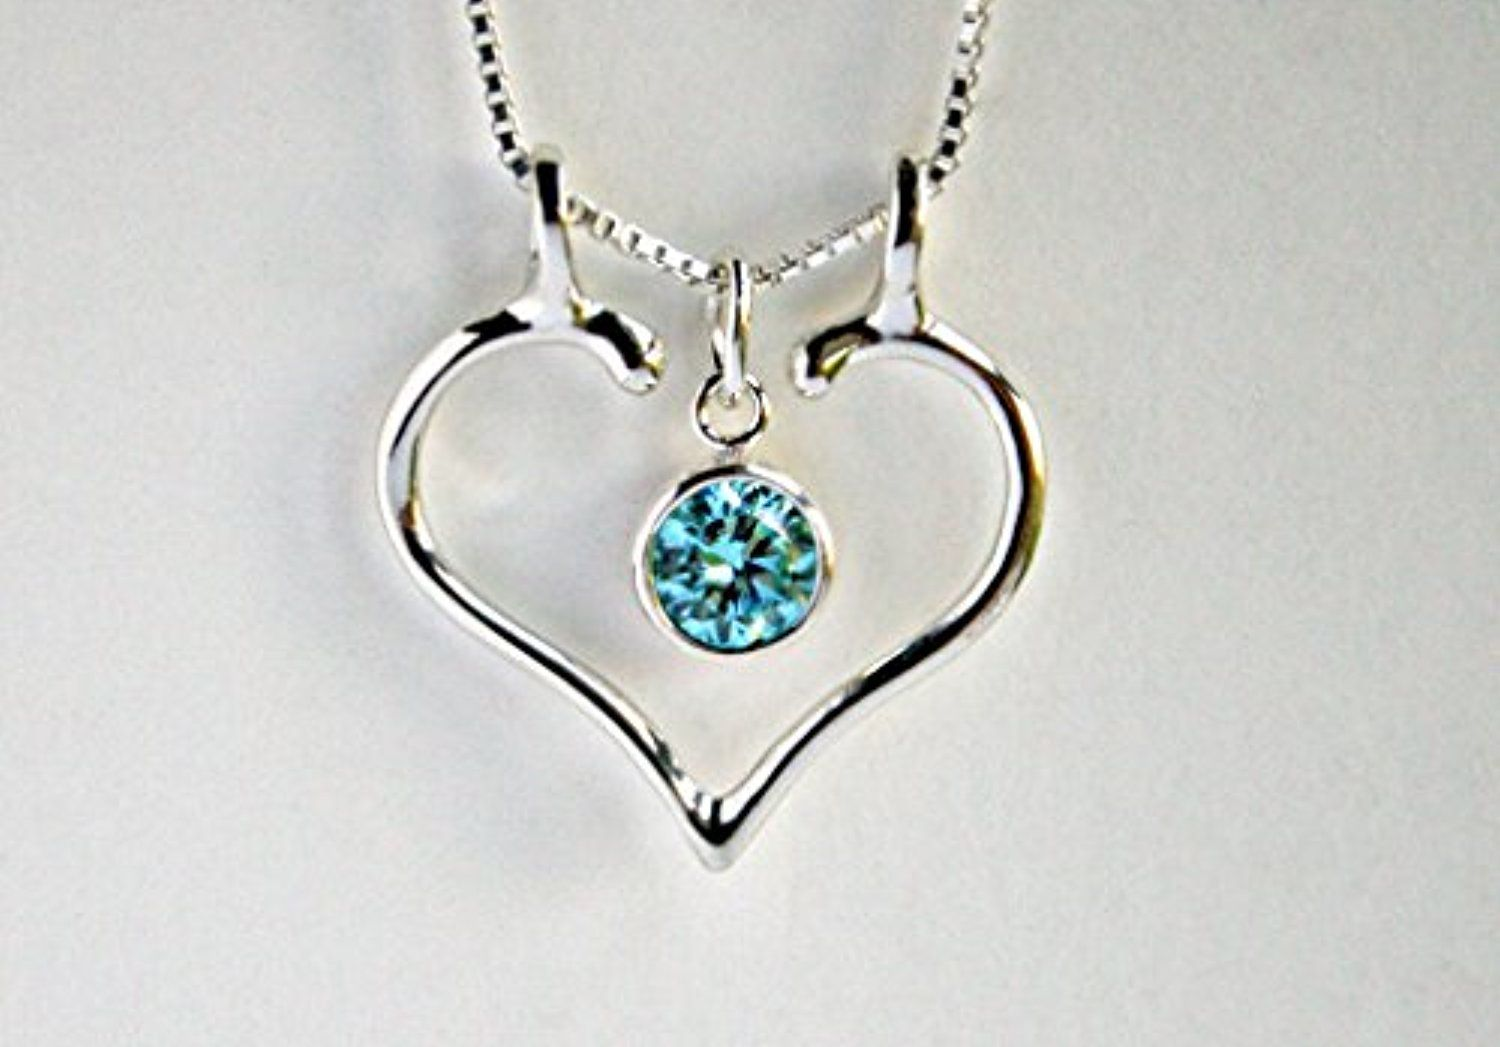 Ring holder necklace charm holder aquamarine and smooth open heart ring holder necklace charm holder aquamarine and smooth open heart by ali c art aloadofball Gallery